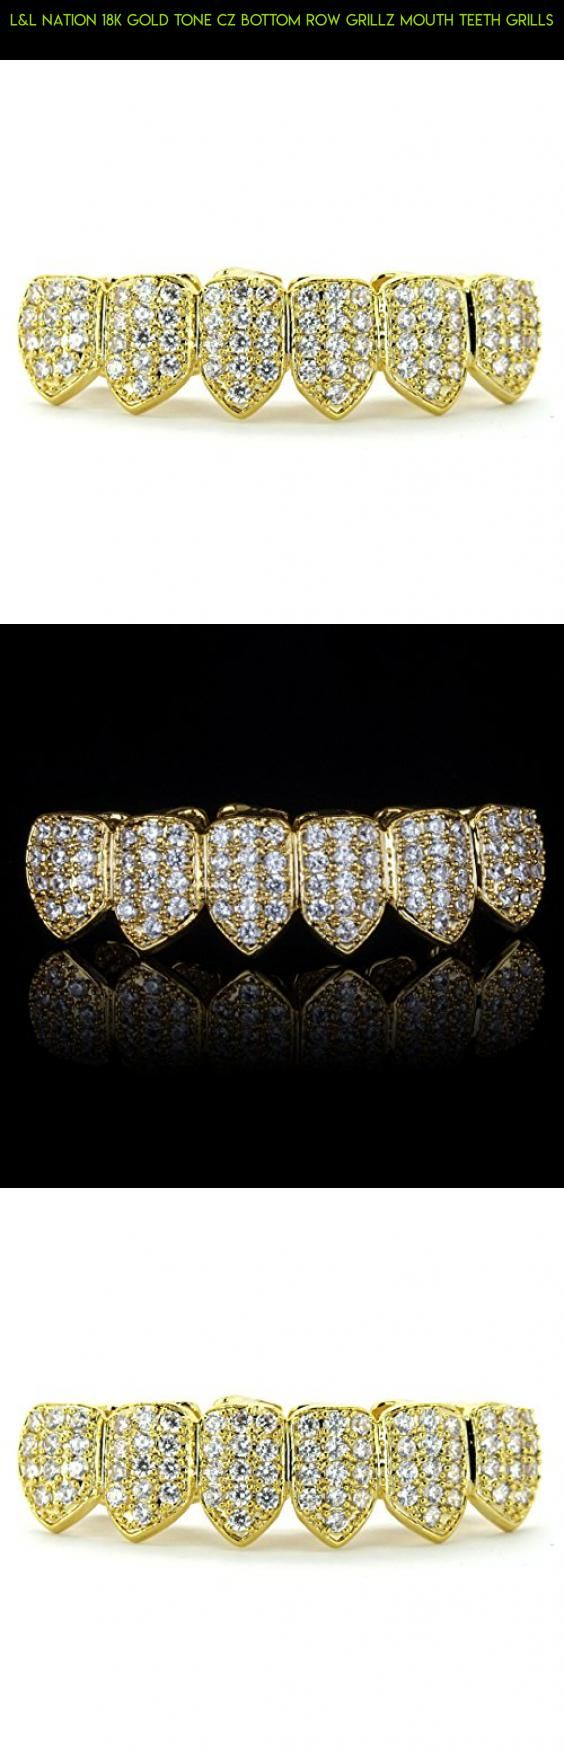 L&L Nation 18K Gold Tone CZ Bottom Row GRILLZ Mouth Teeth Grills #shopping #products #parts #racing #teeth #plans #your #fpv #grills #drone #for #gadgets #camera #tech #technology #bottom #kit